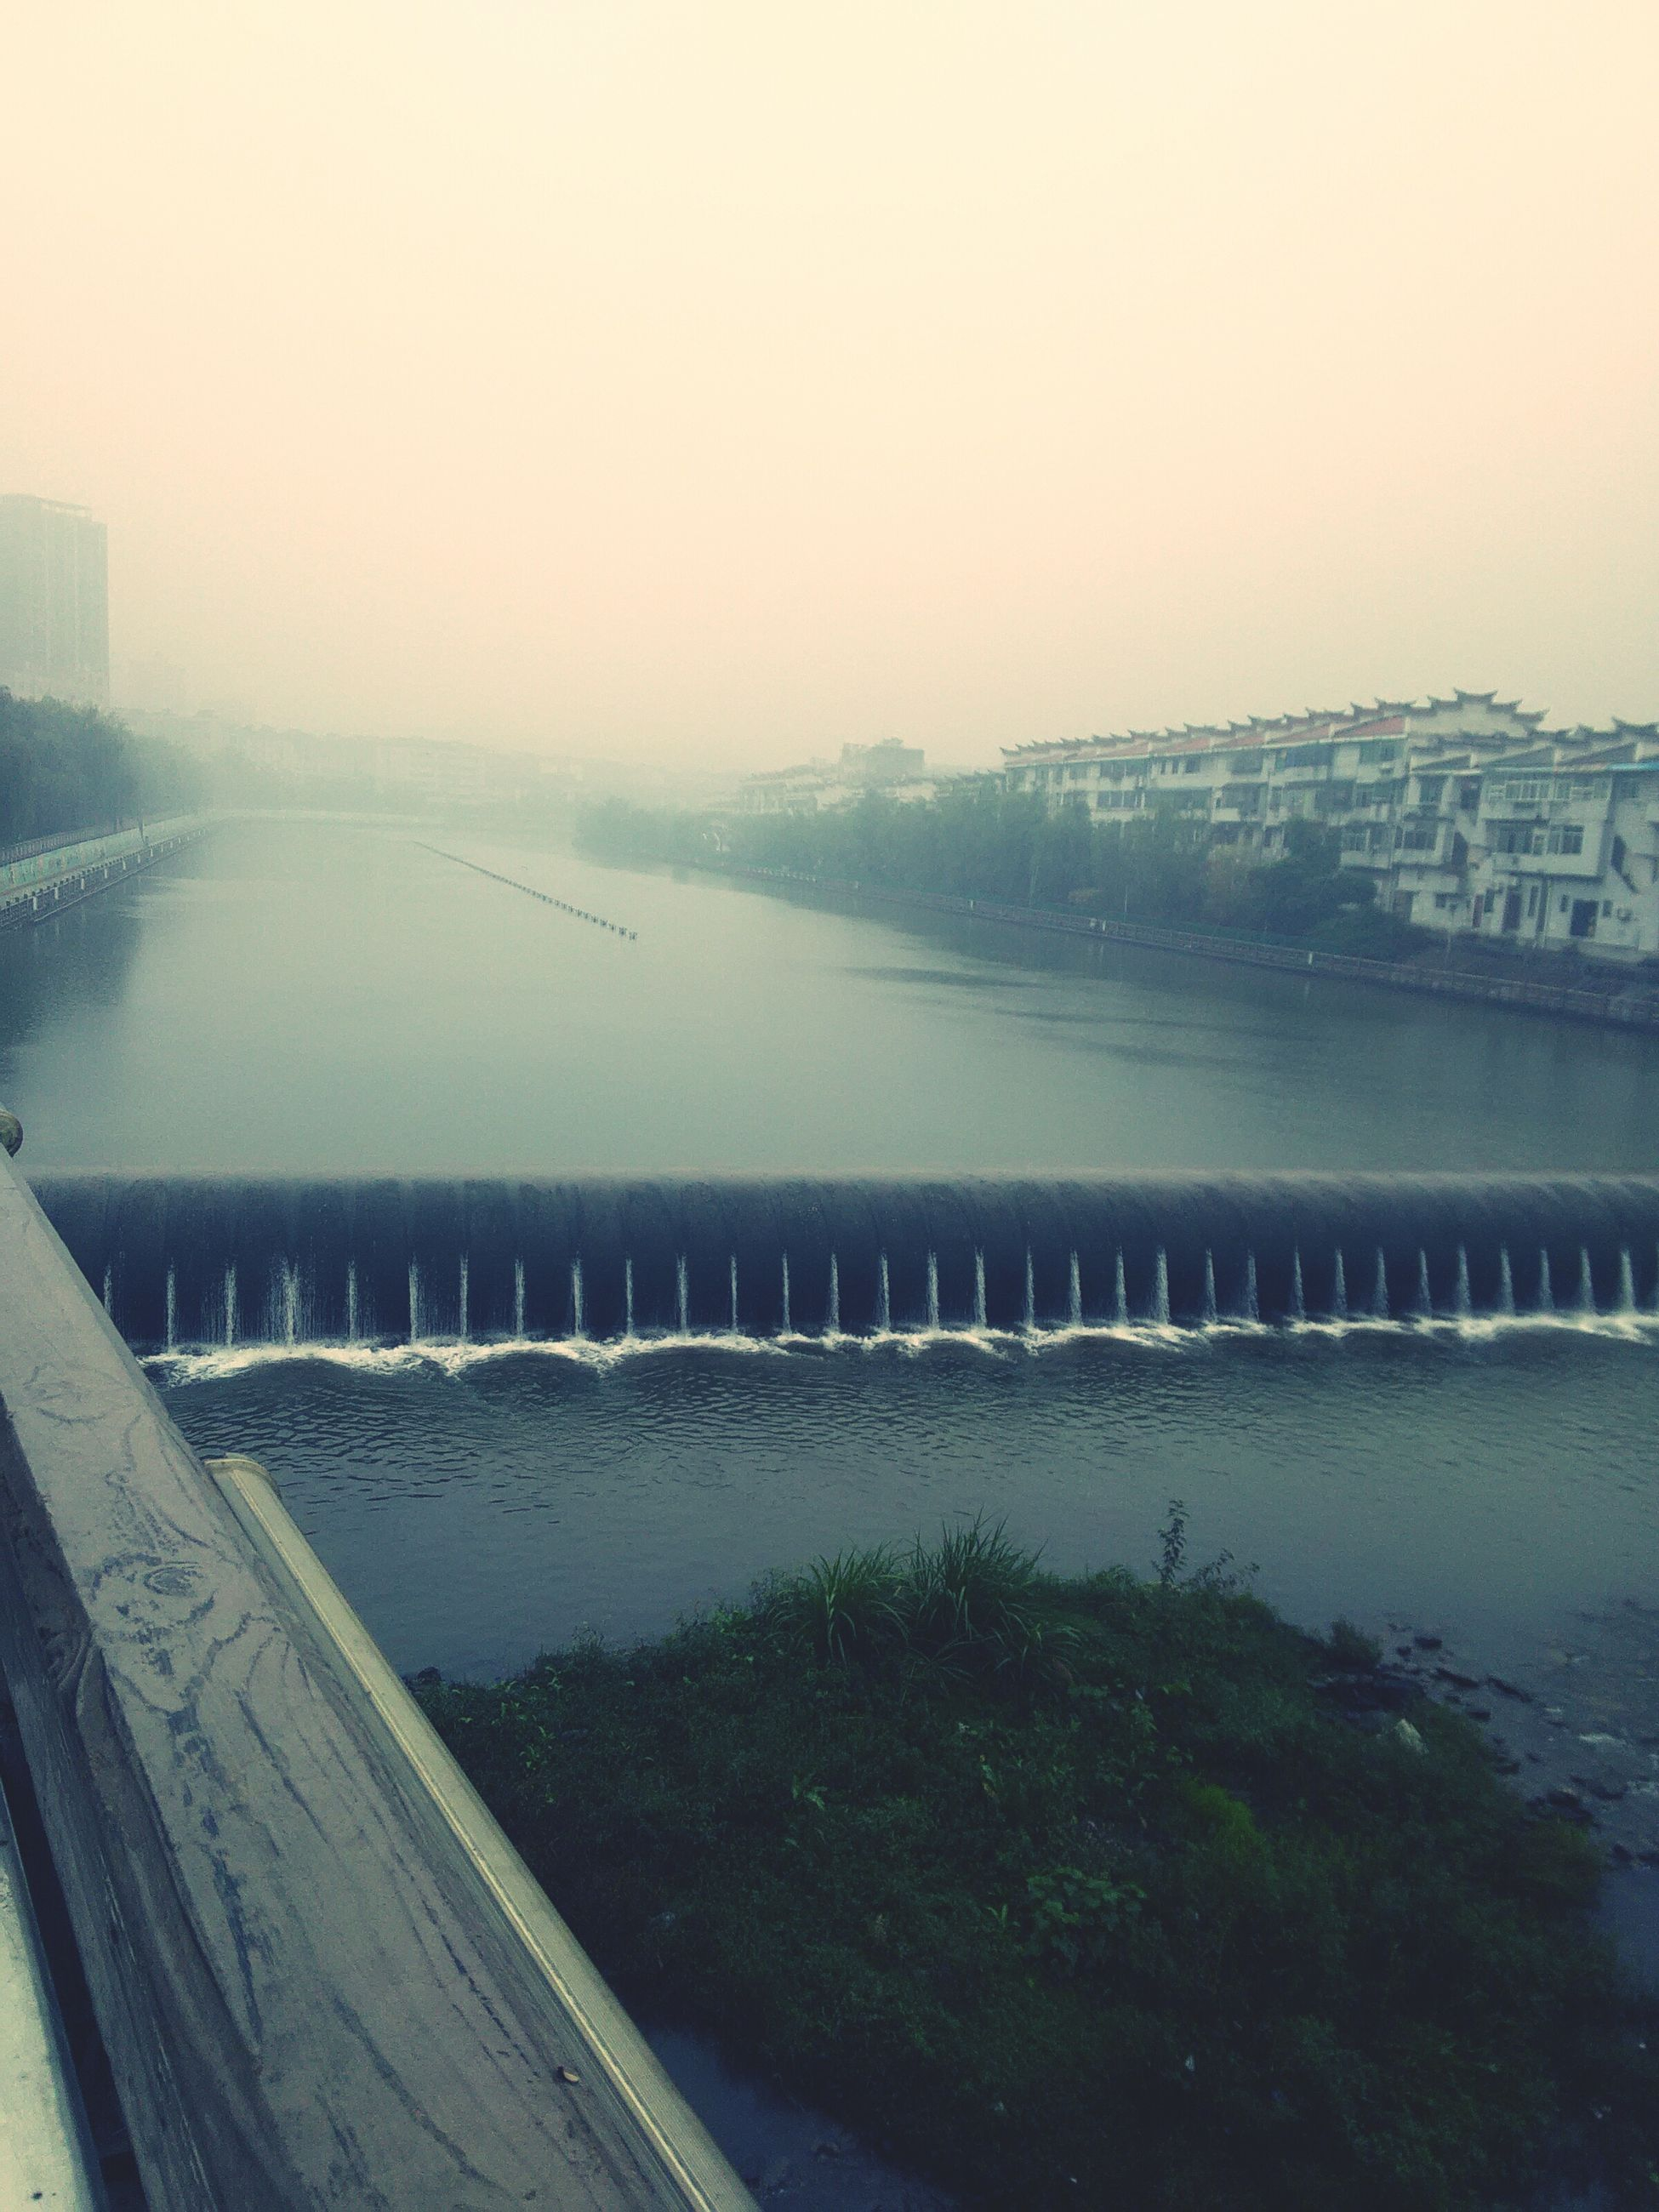 water, built structure, river, architecture, clear sky, building exterior, city, foggy, weather, nature, copy space, sky, season, railing, cityscape, transportation, bridge - man made structure, day, outdoors